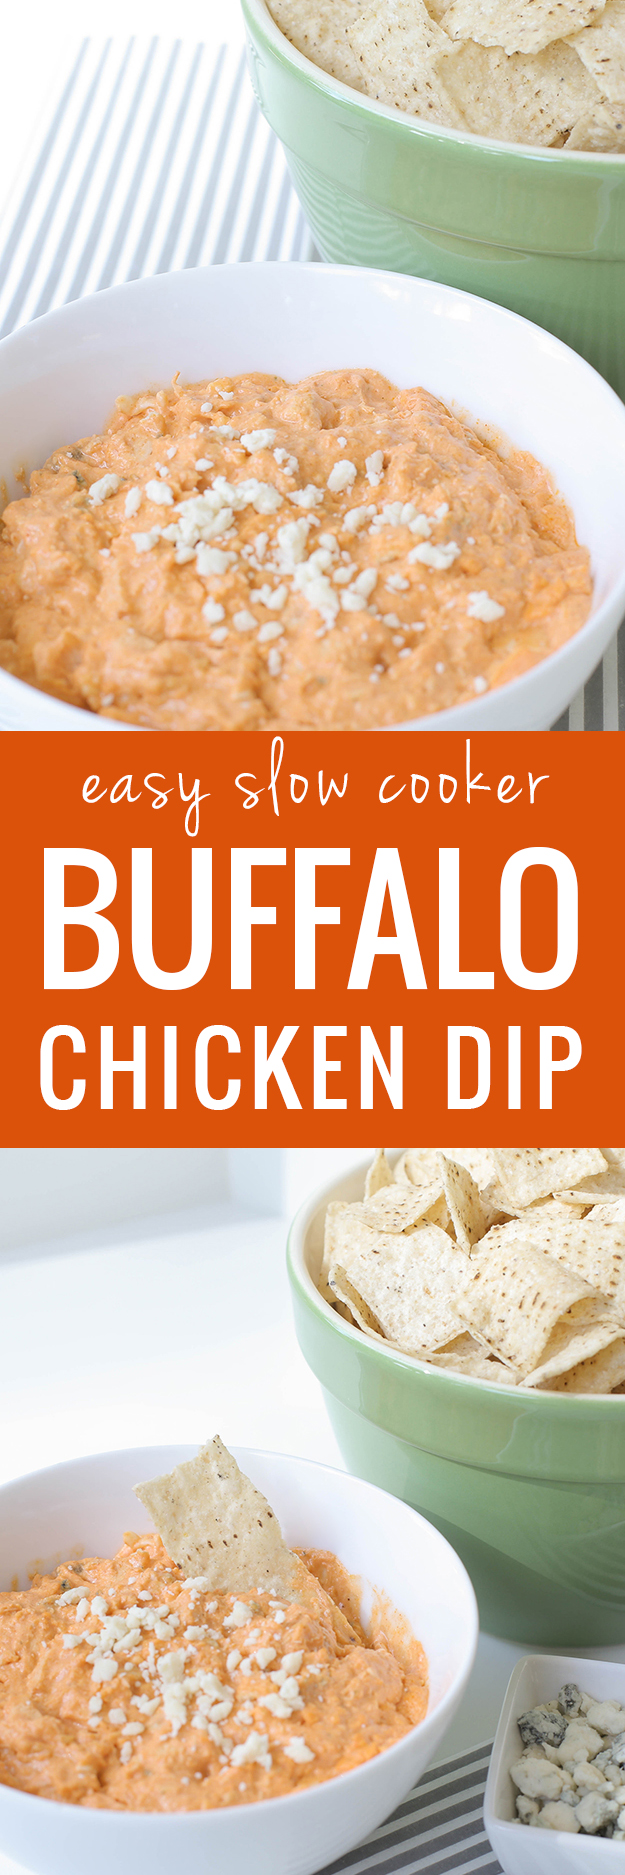 Easy Slow Cooker Buffalo Chicken Dip Recipe and Appetizer